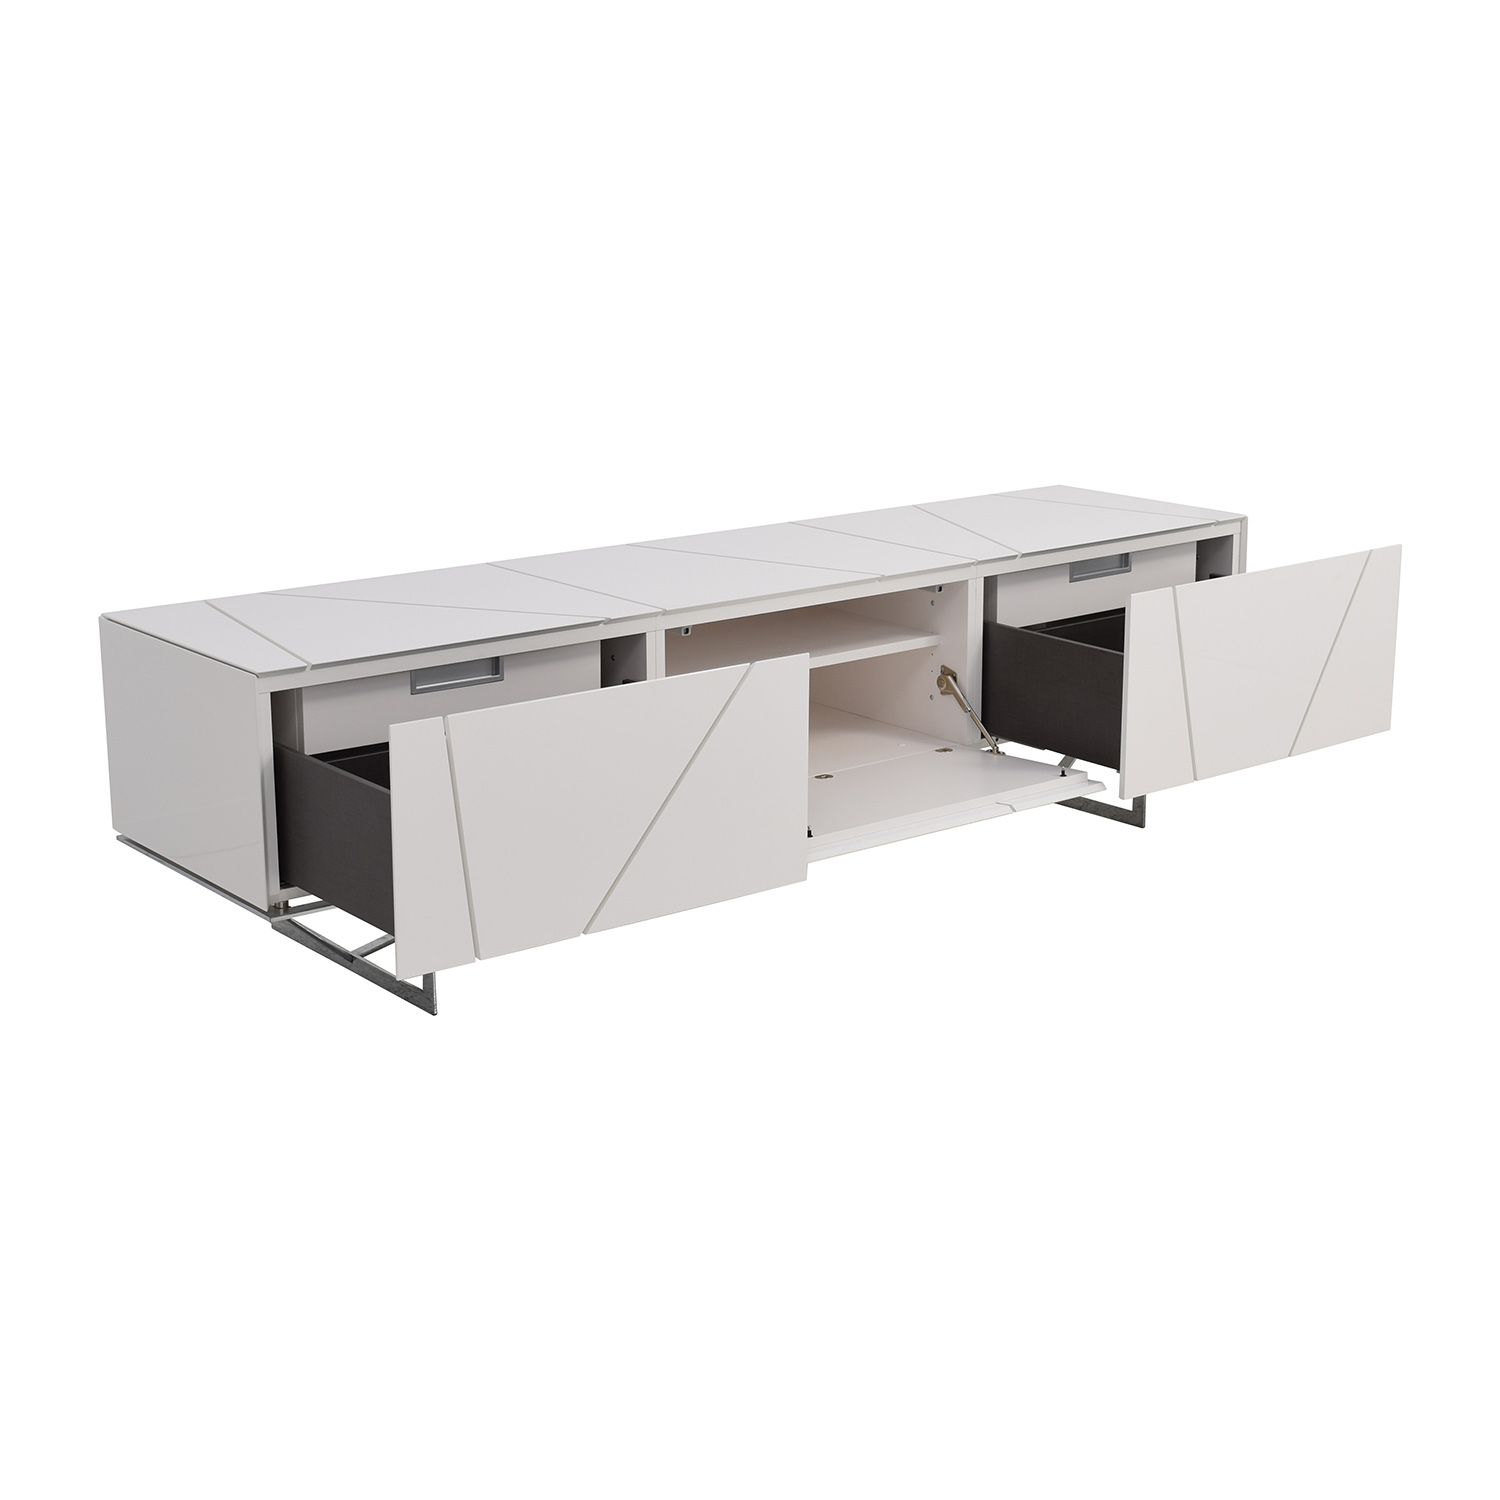 72 off ligne roset ligne roset lines sideboard storage. Black Bedroom Furniture Sets. Home Design Ideas